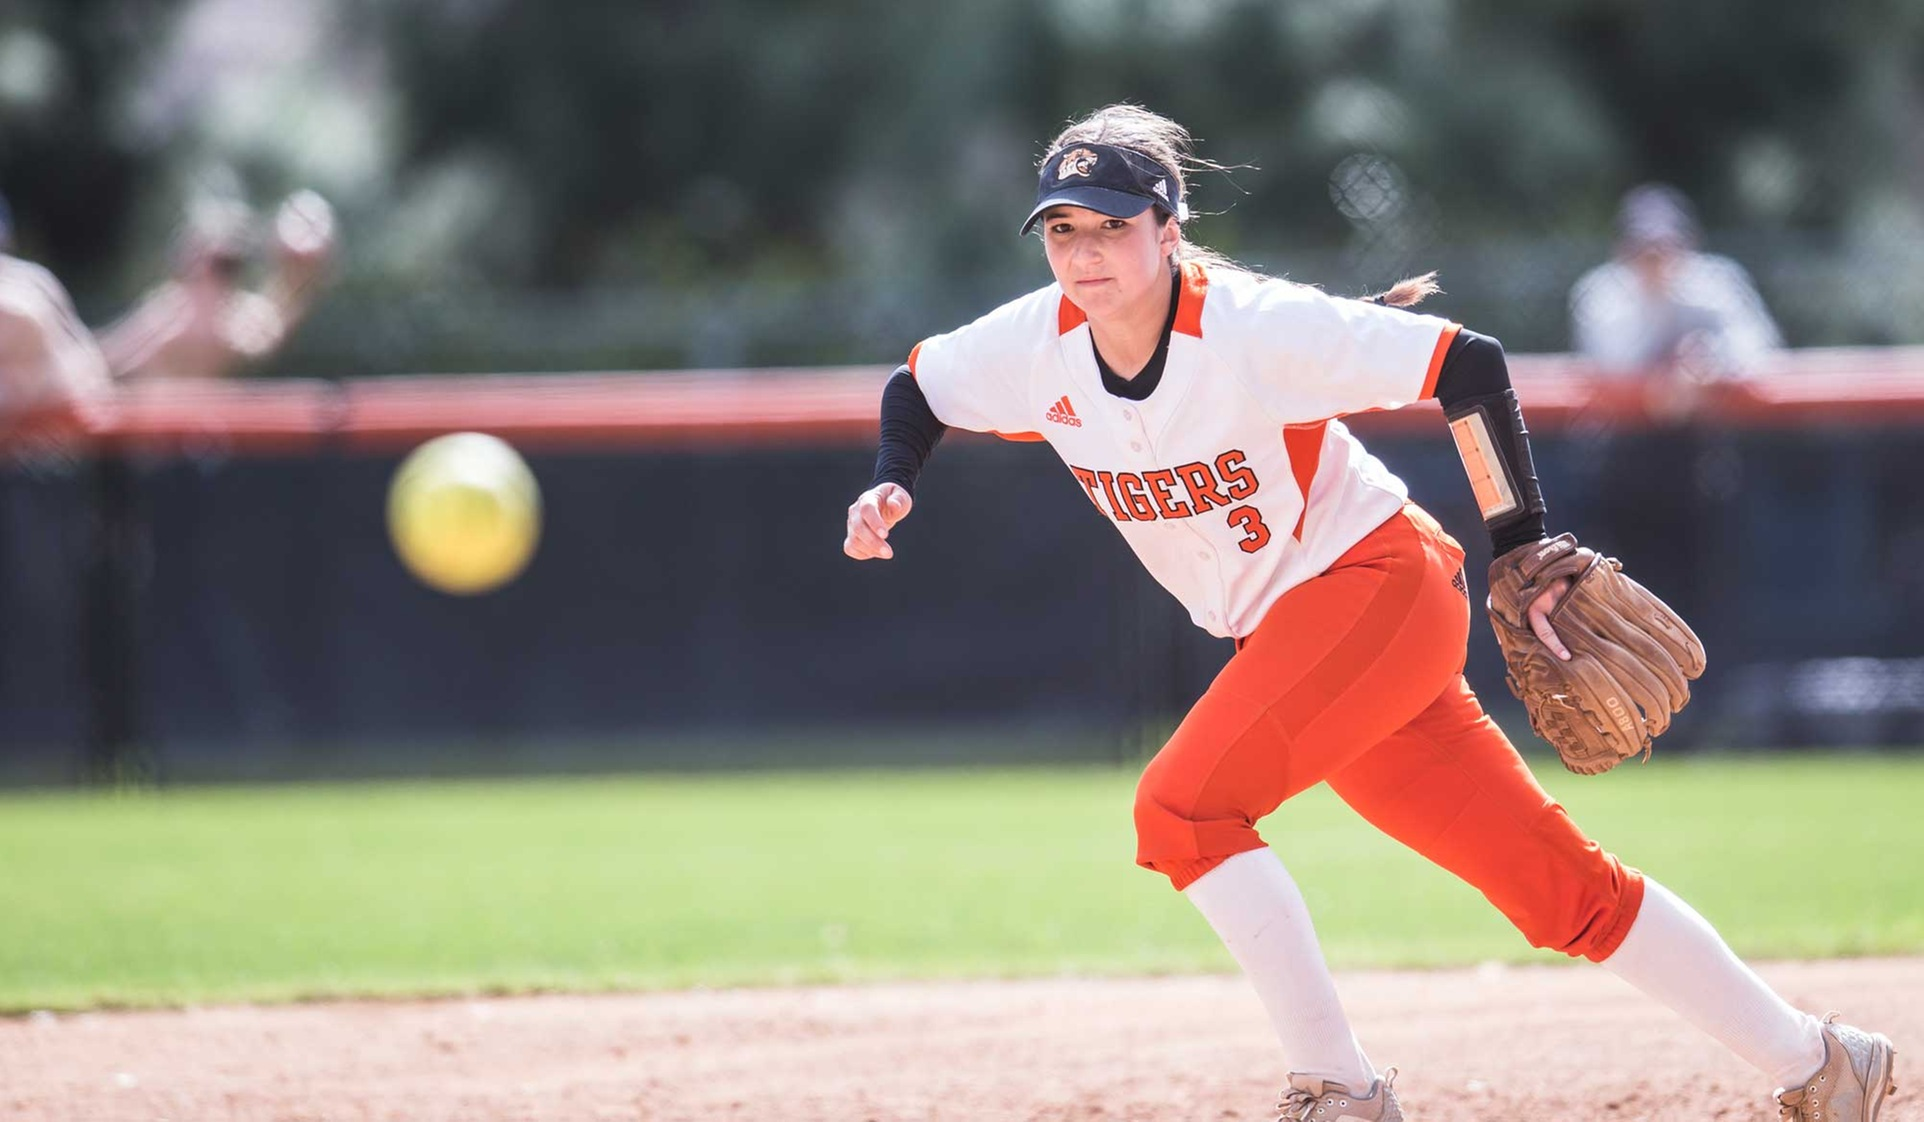 Tigers Fall in Doubleheader at Chapman